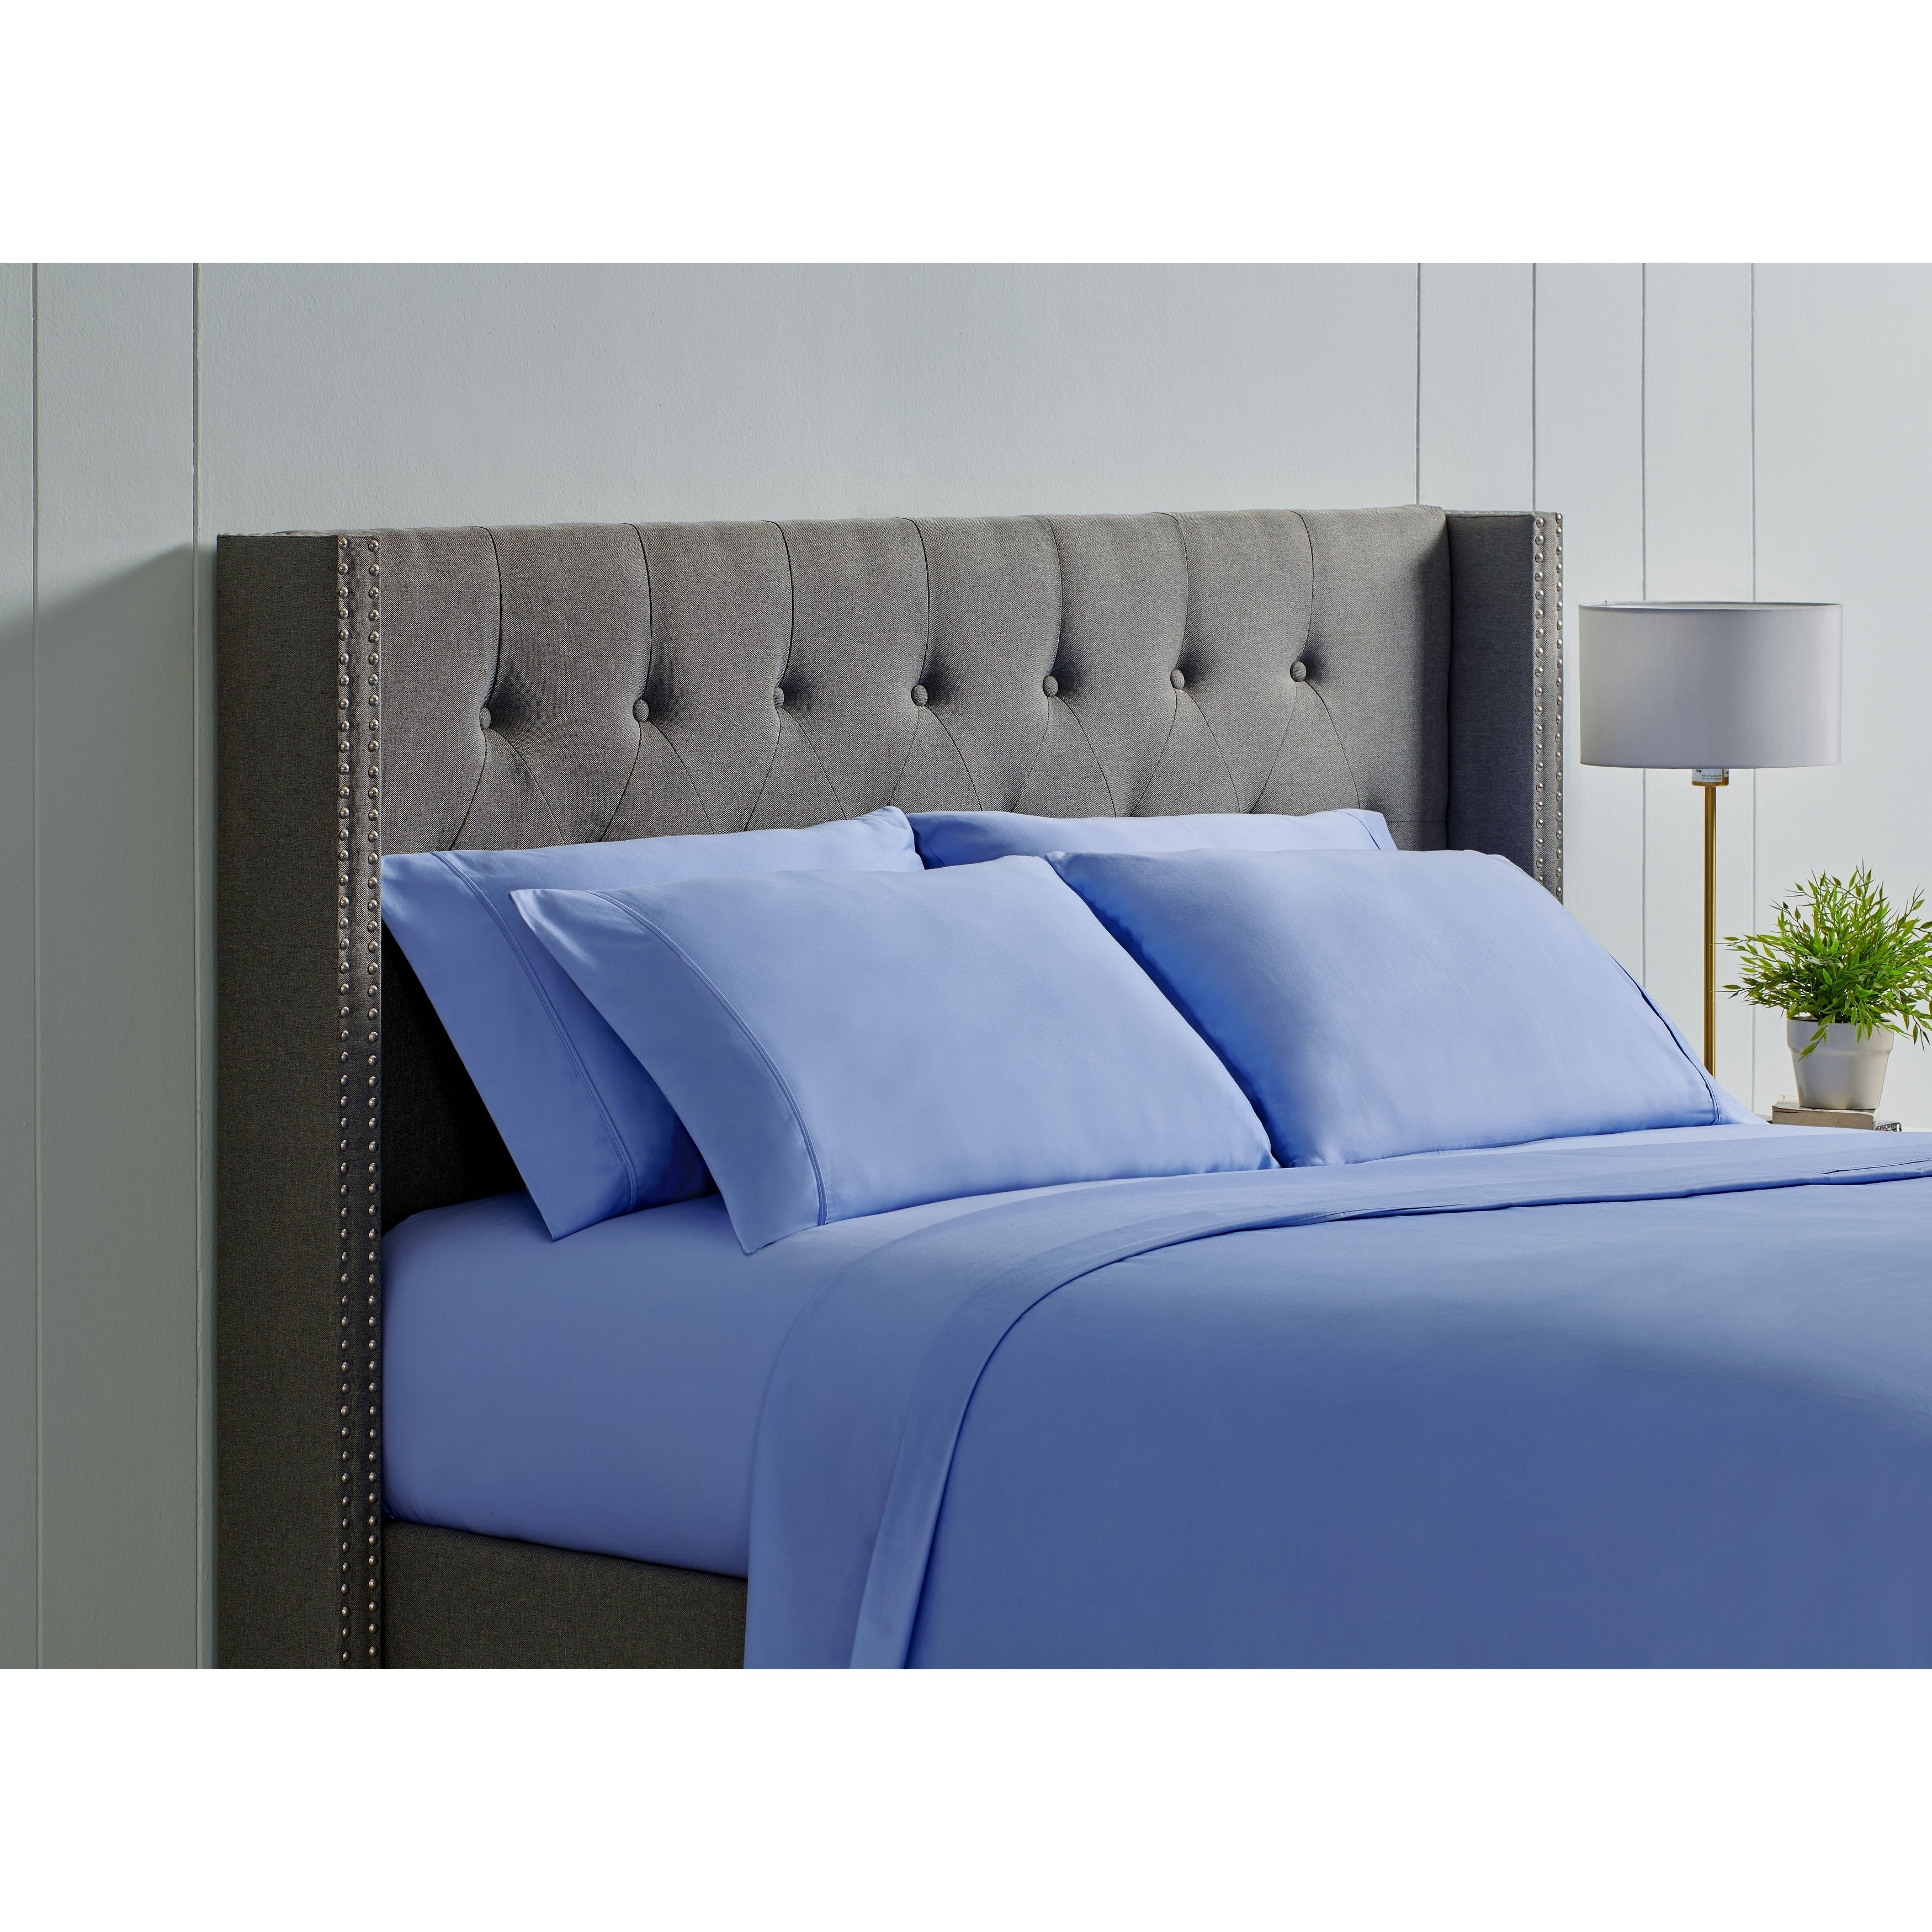 Christopher Knight 14ct Cotton Sheet Set-Cal King -14 pc-Steel Blue